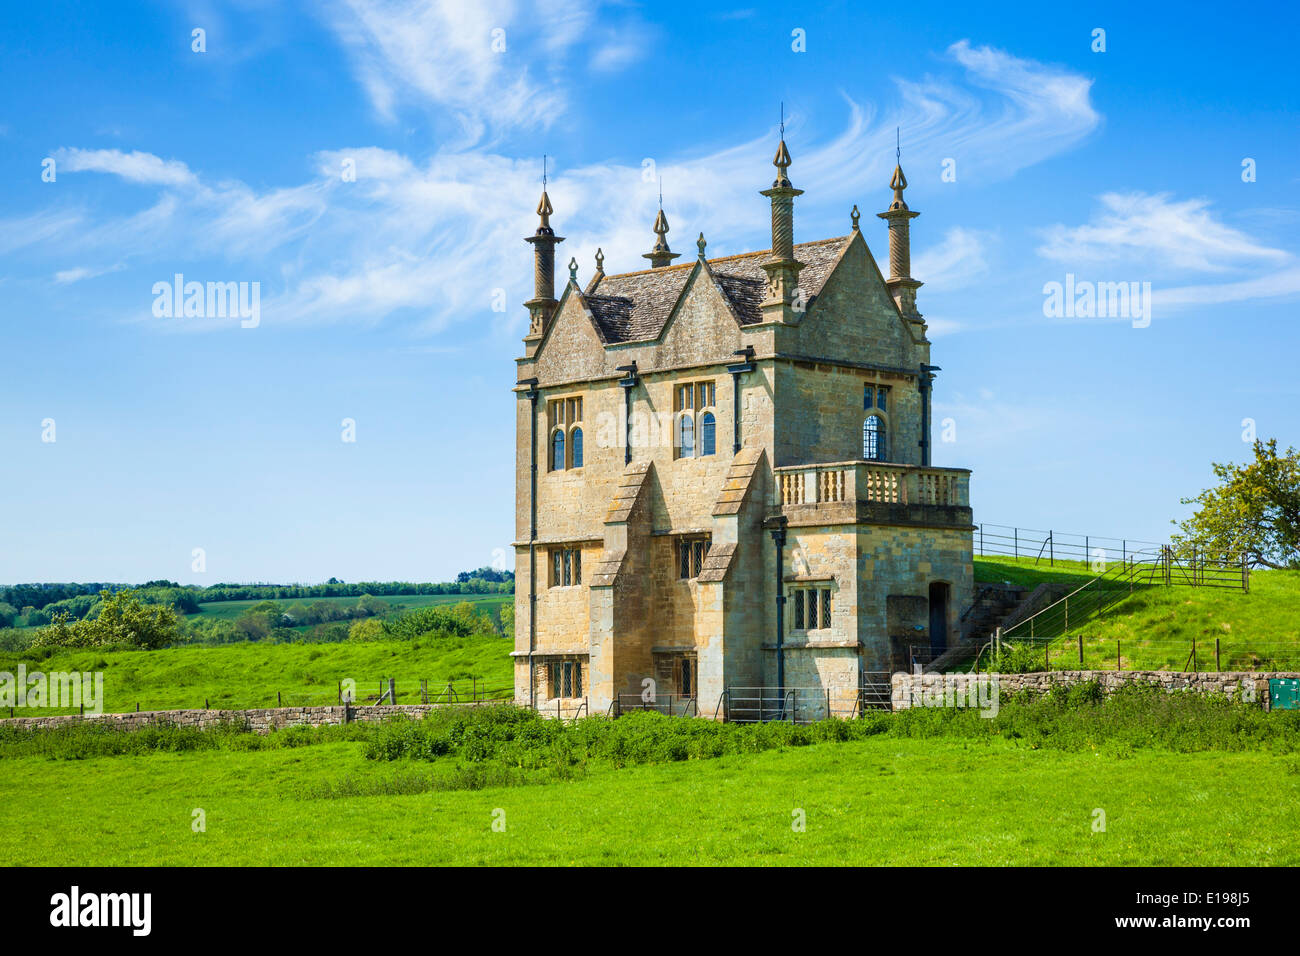 East Banqueting House Jacobean Lodge, Chipping Campden, Gloucestershire, Cotswolds, England, UK, EU, Europe Stock Photo